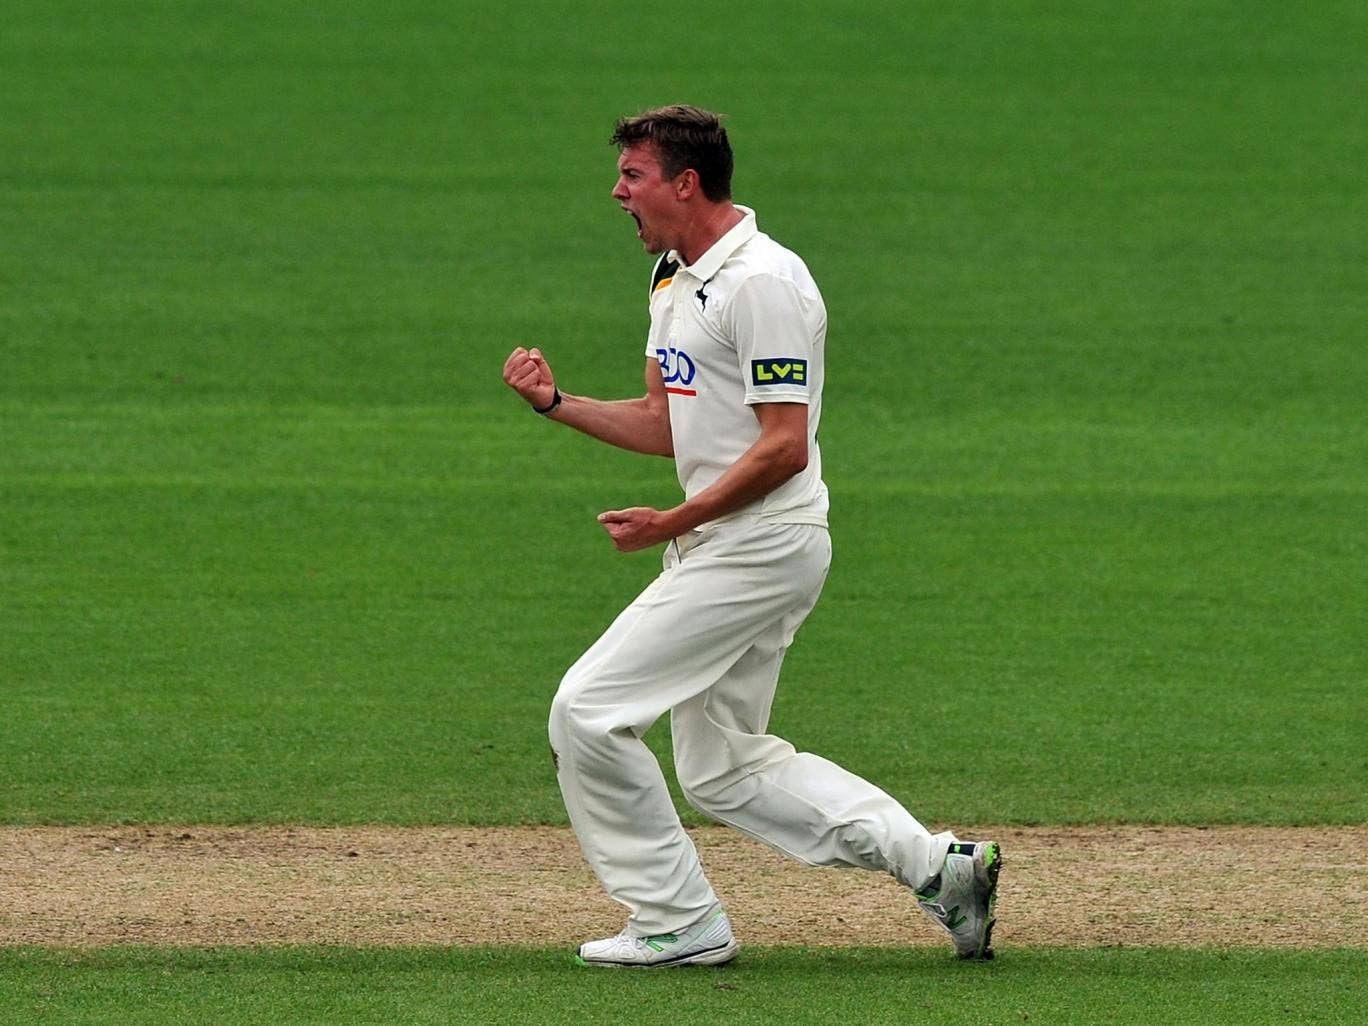 Nottinghamshire's Jake Ball celebrates taking the wicket of Lancashire's Luke Procter